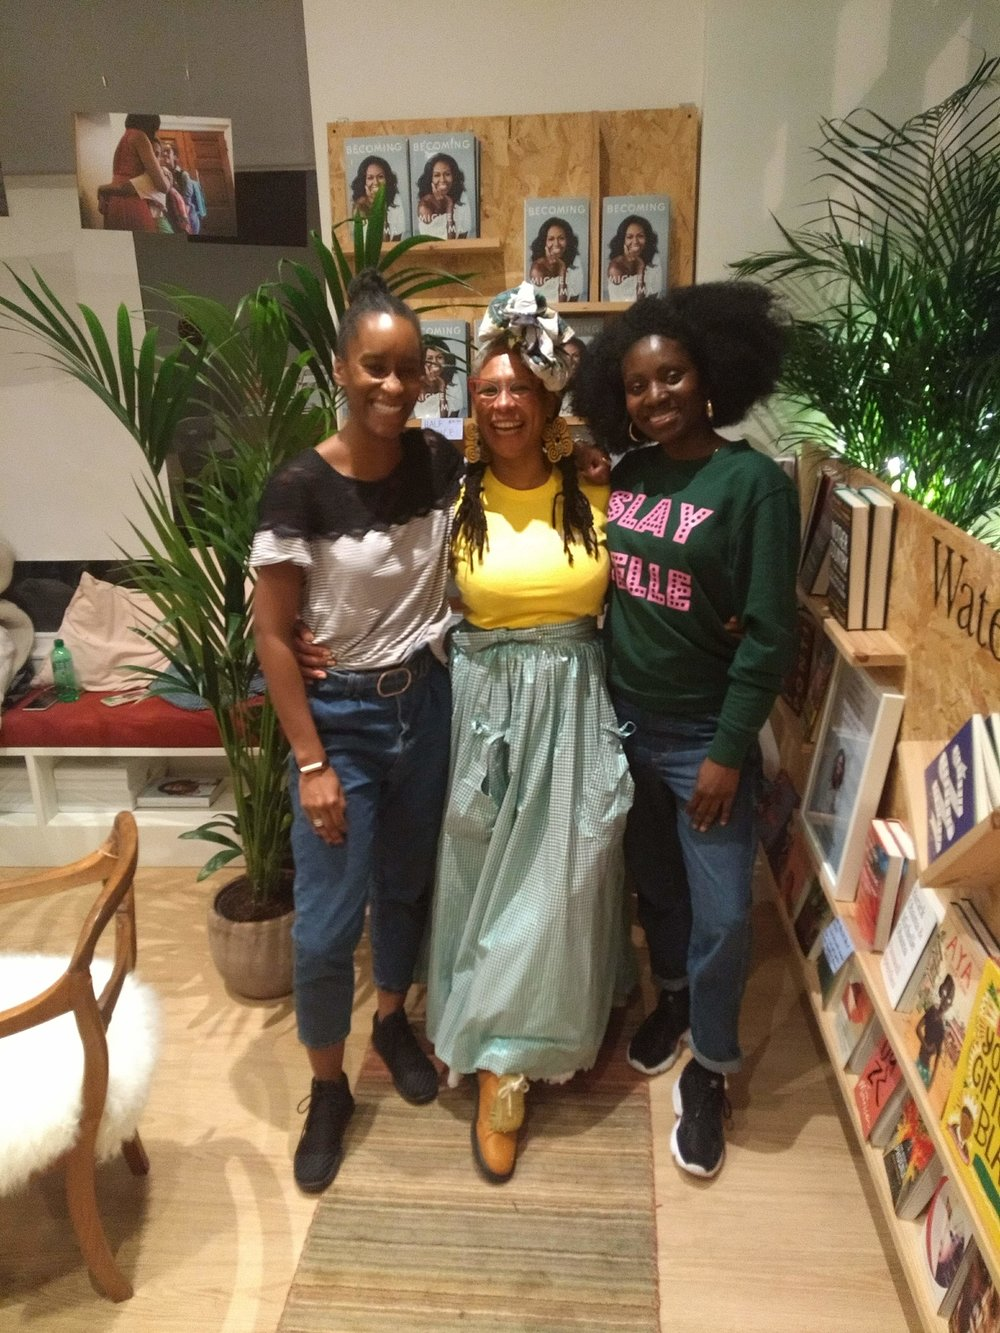 Motherhood reconstructed founders Tamu and Leah held an evening in collaboration with  Gal-Dem  who took over a bookshop in Bloomsbury in honour of Michelle Obamas autobiography Becoming. We discussed the legacy of black motherhood. Such an inspirational evening! November 2018.